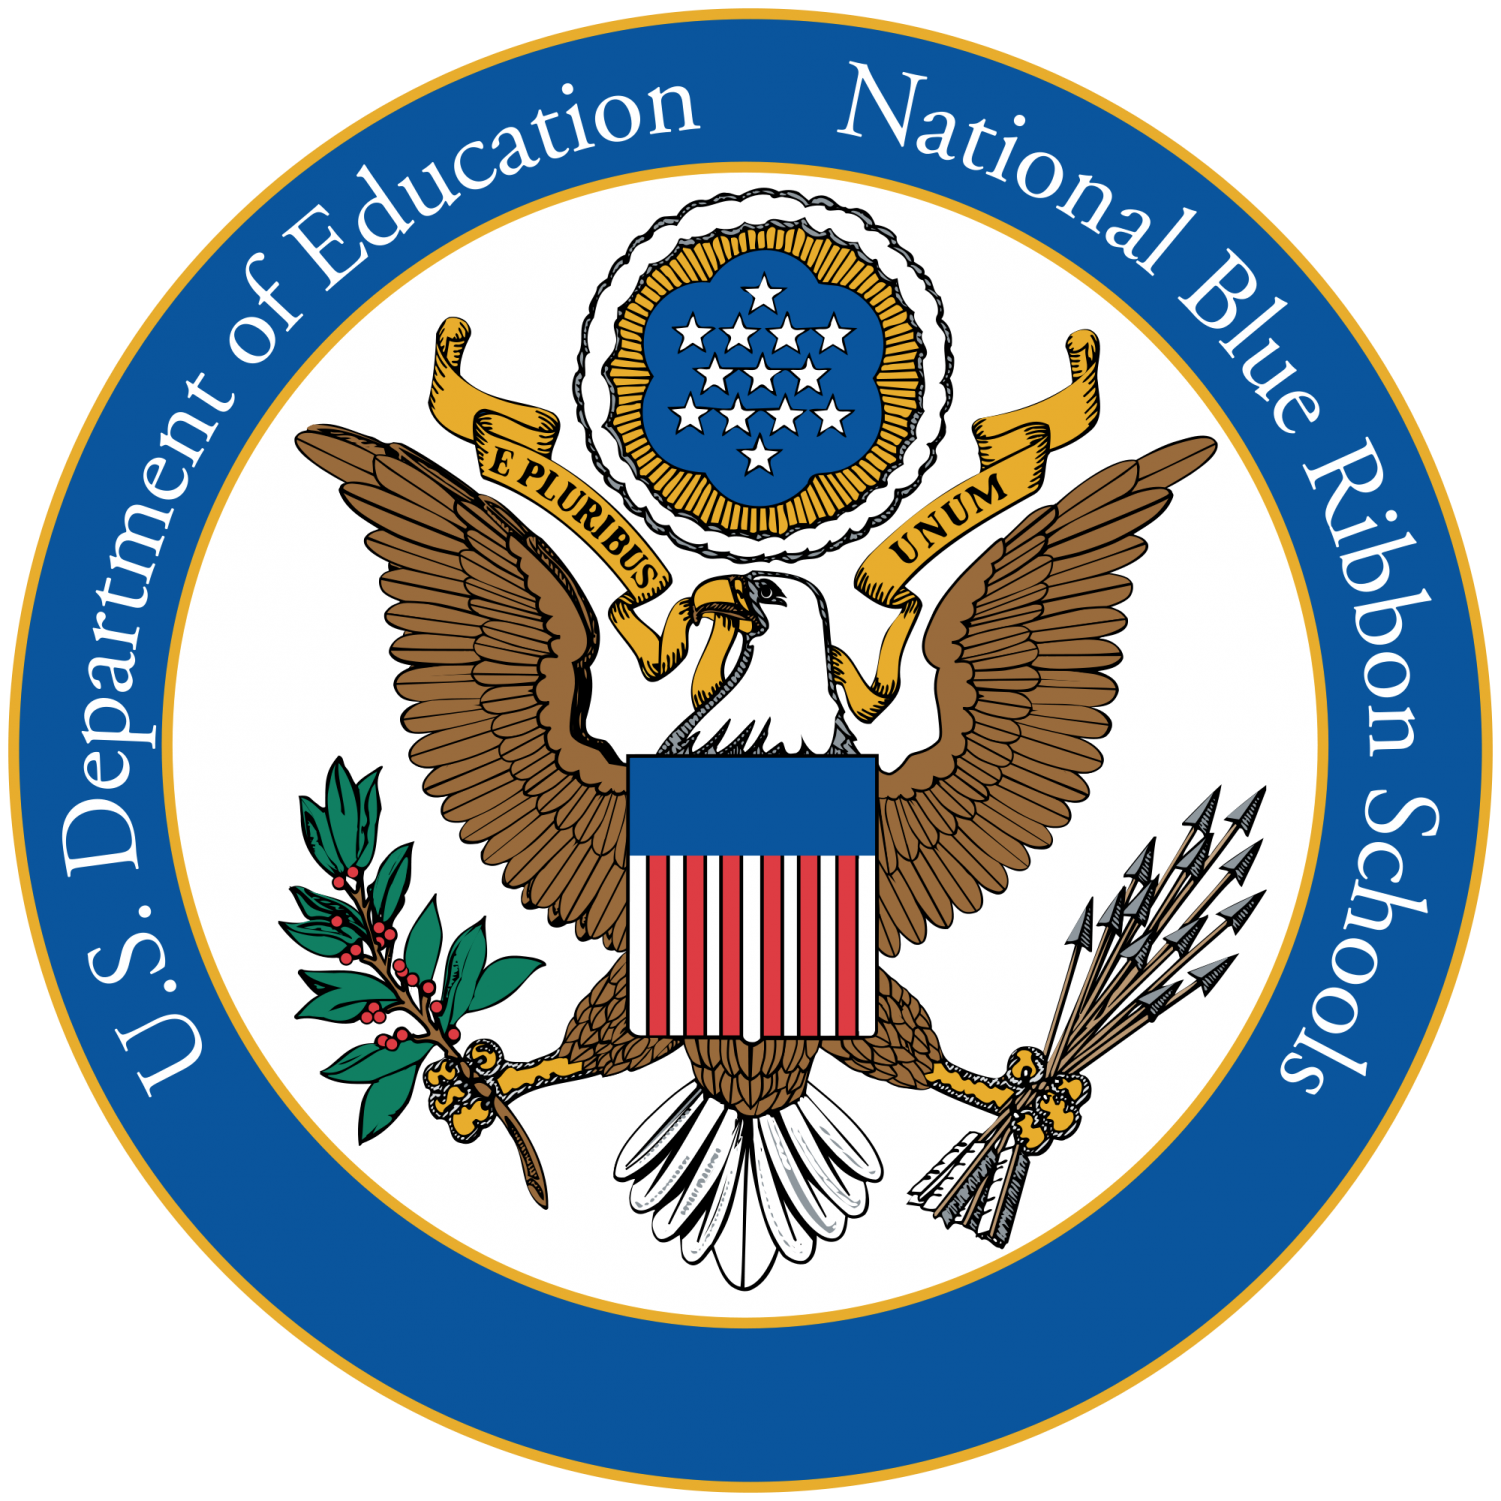 The Blue Ribbon Award recognizes schools across the U.S. based on student's academic achievements. Image courtesy of Wikimedia Commons